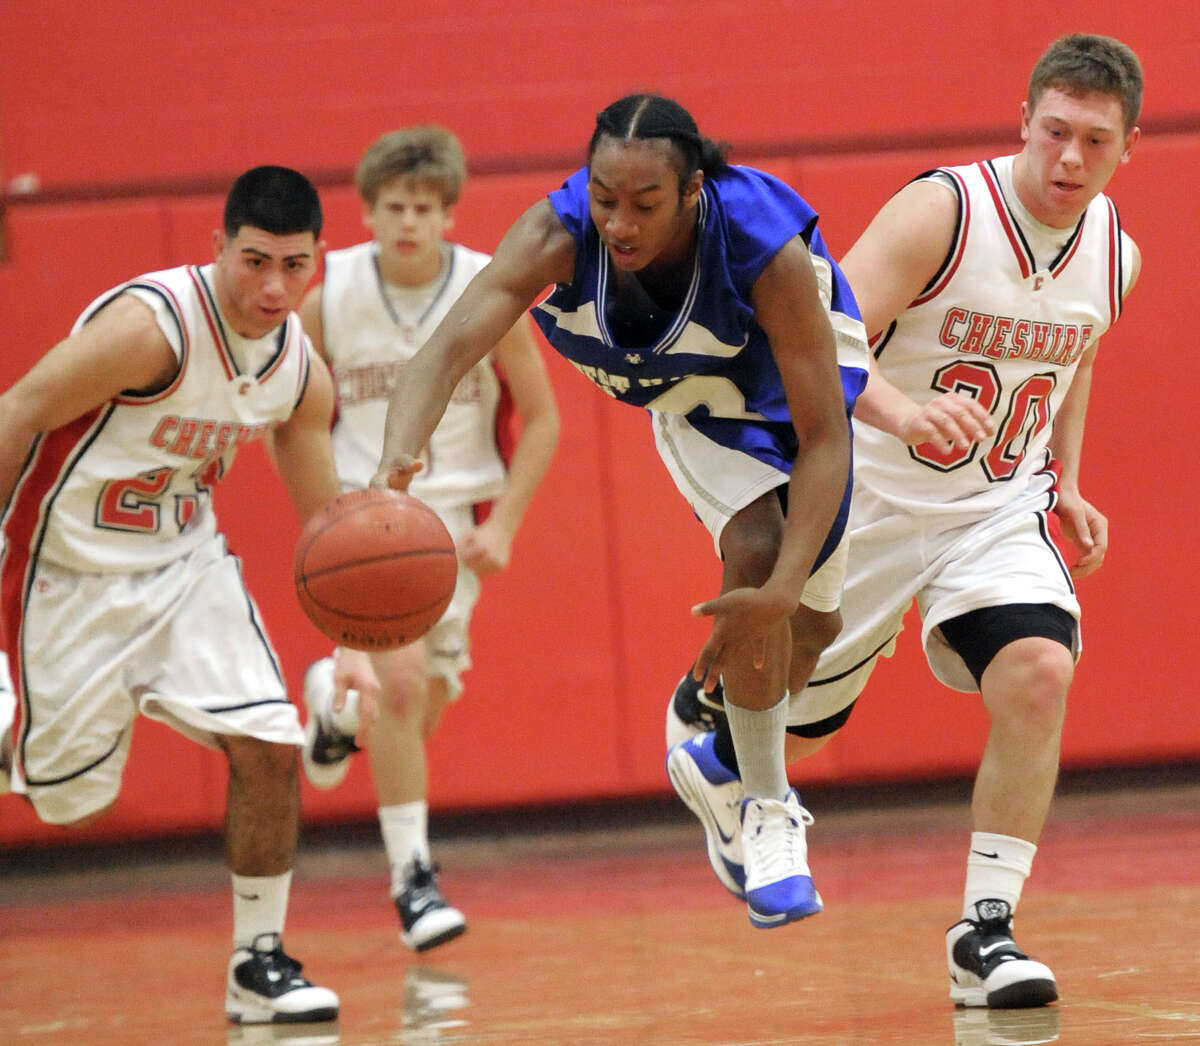 Cheshire--West Haven's Tieron Jackson, center, beats Cheshire's Matt Bailey, left, and Billy Weyrauch to a lose ball Thursday night. Photo by Brad Horrigan/New Haven Register-12.30.10.